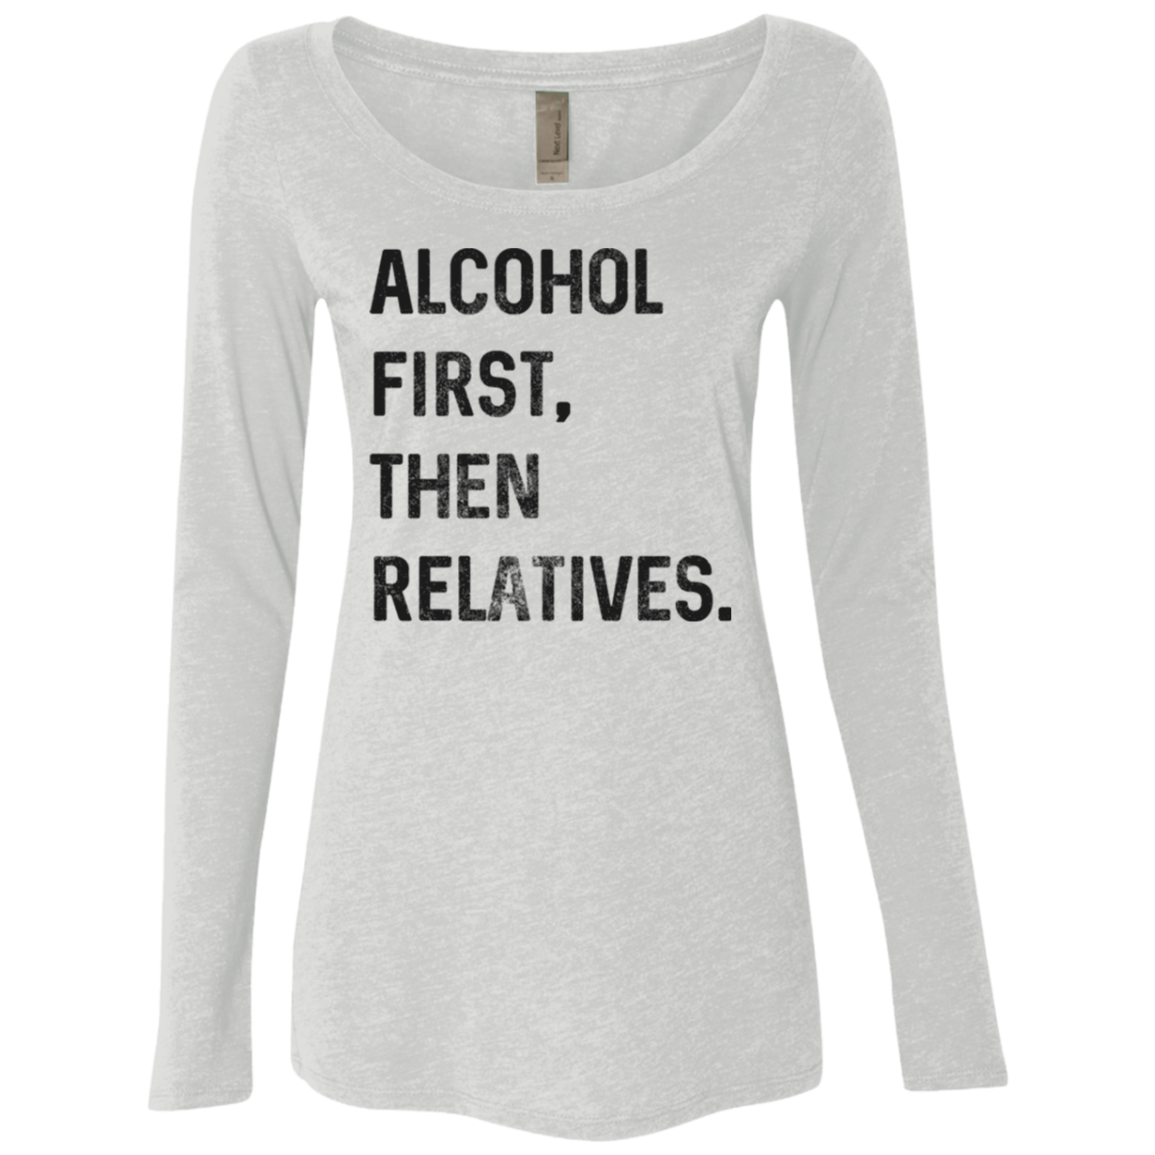 Alcohol First then Relatives Women's Long Sleeve Tee